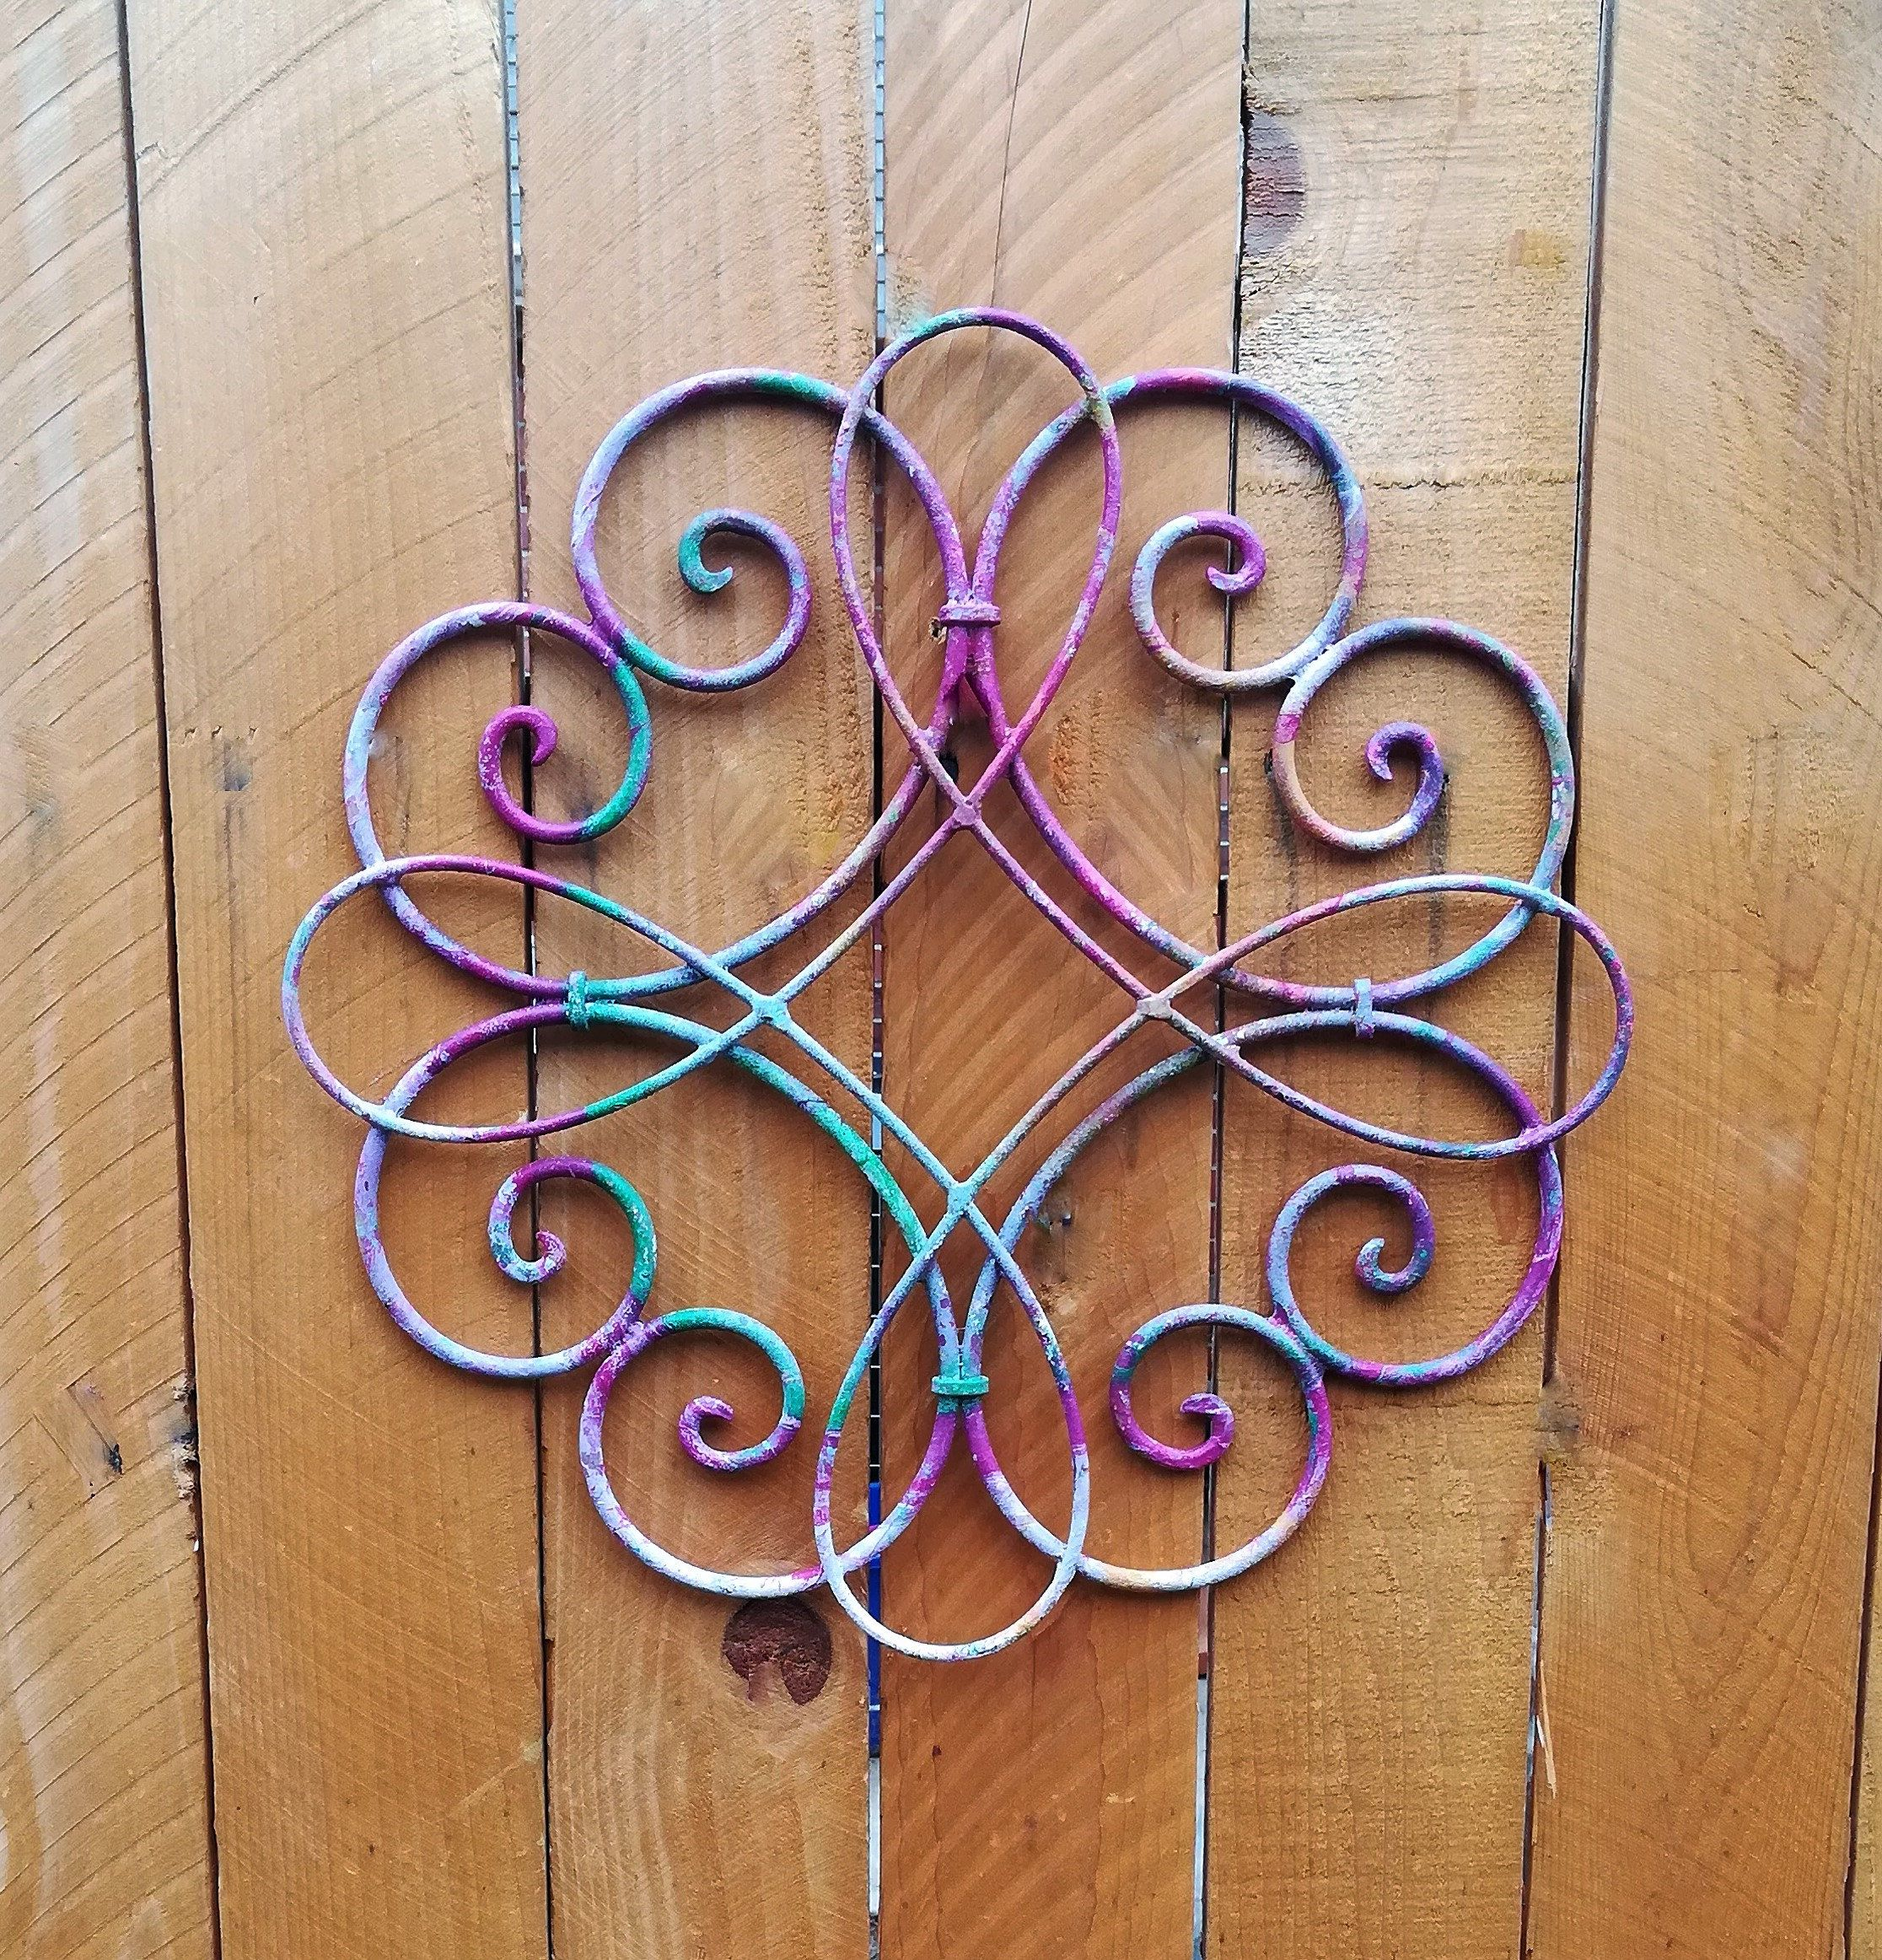 Colorful Metal Wall Decor, Metal Wall Hanging, Decorative Wall ...